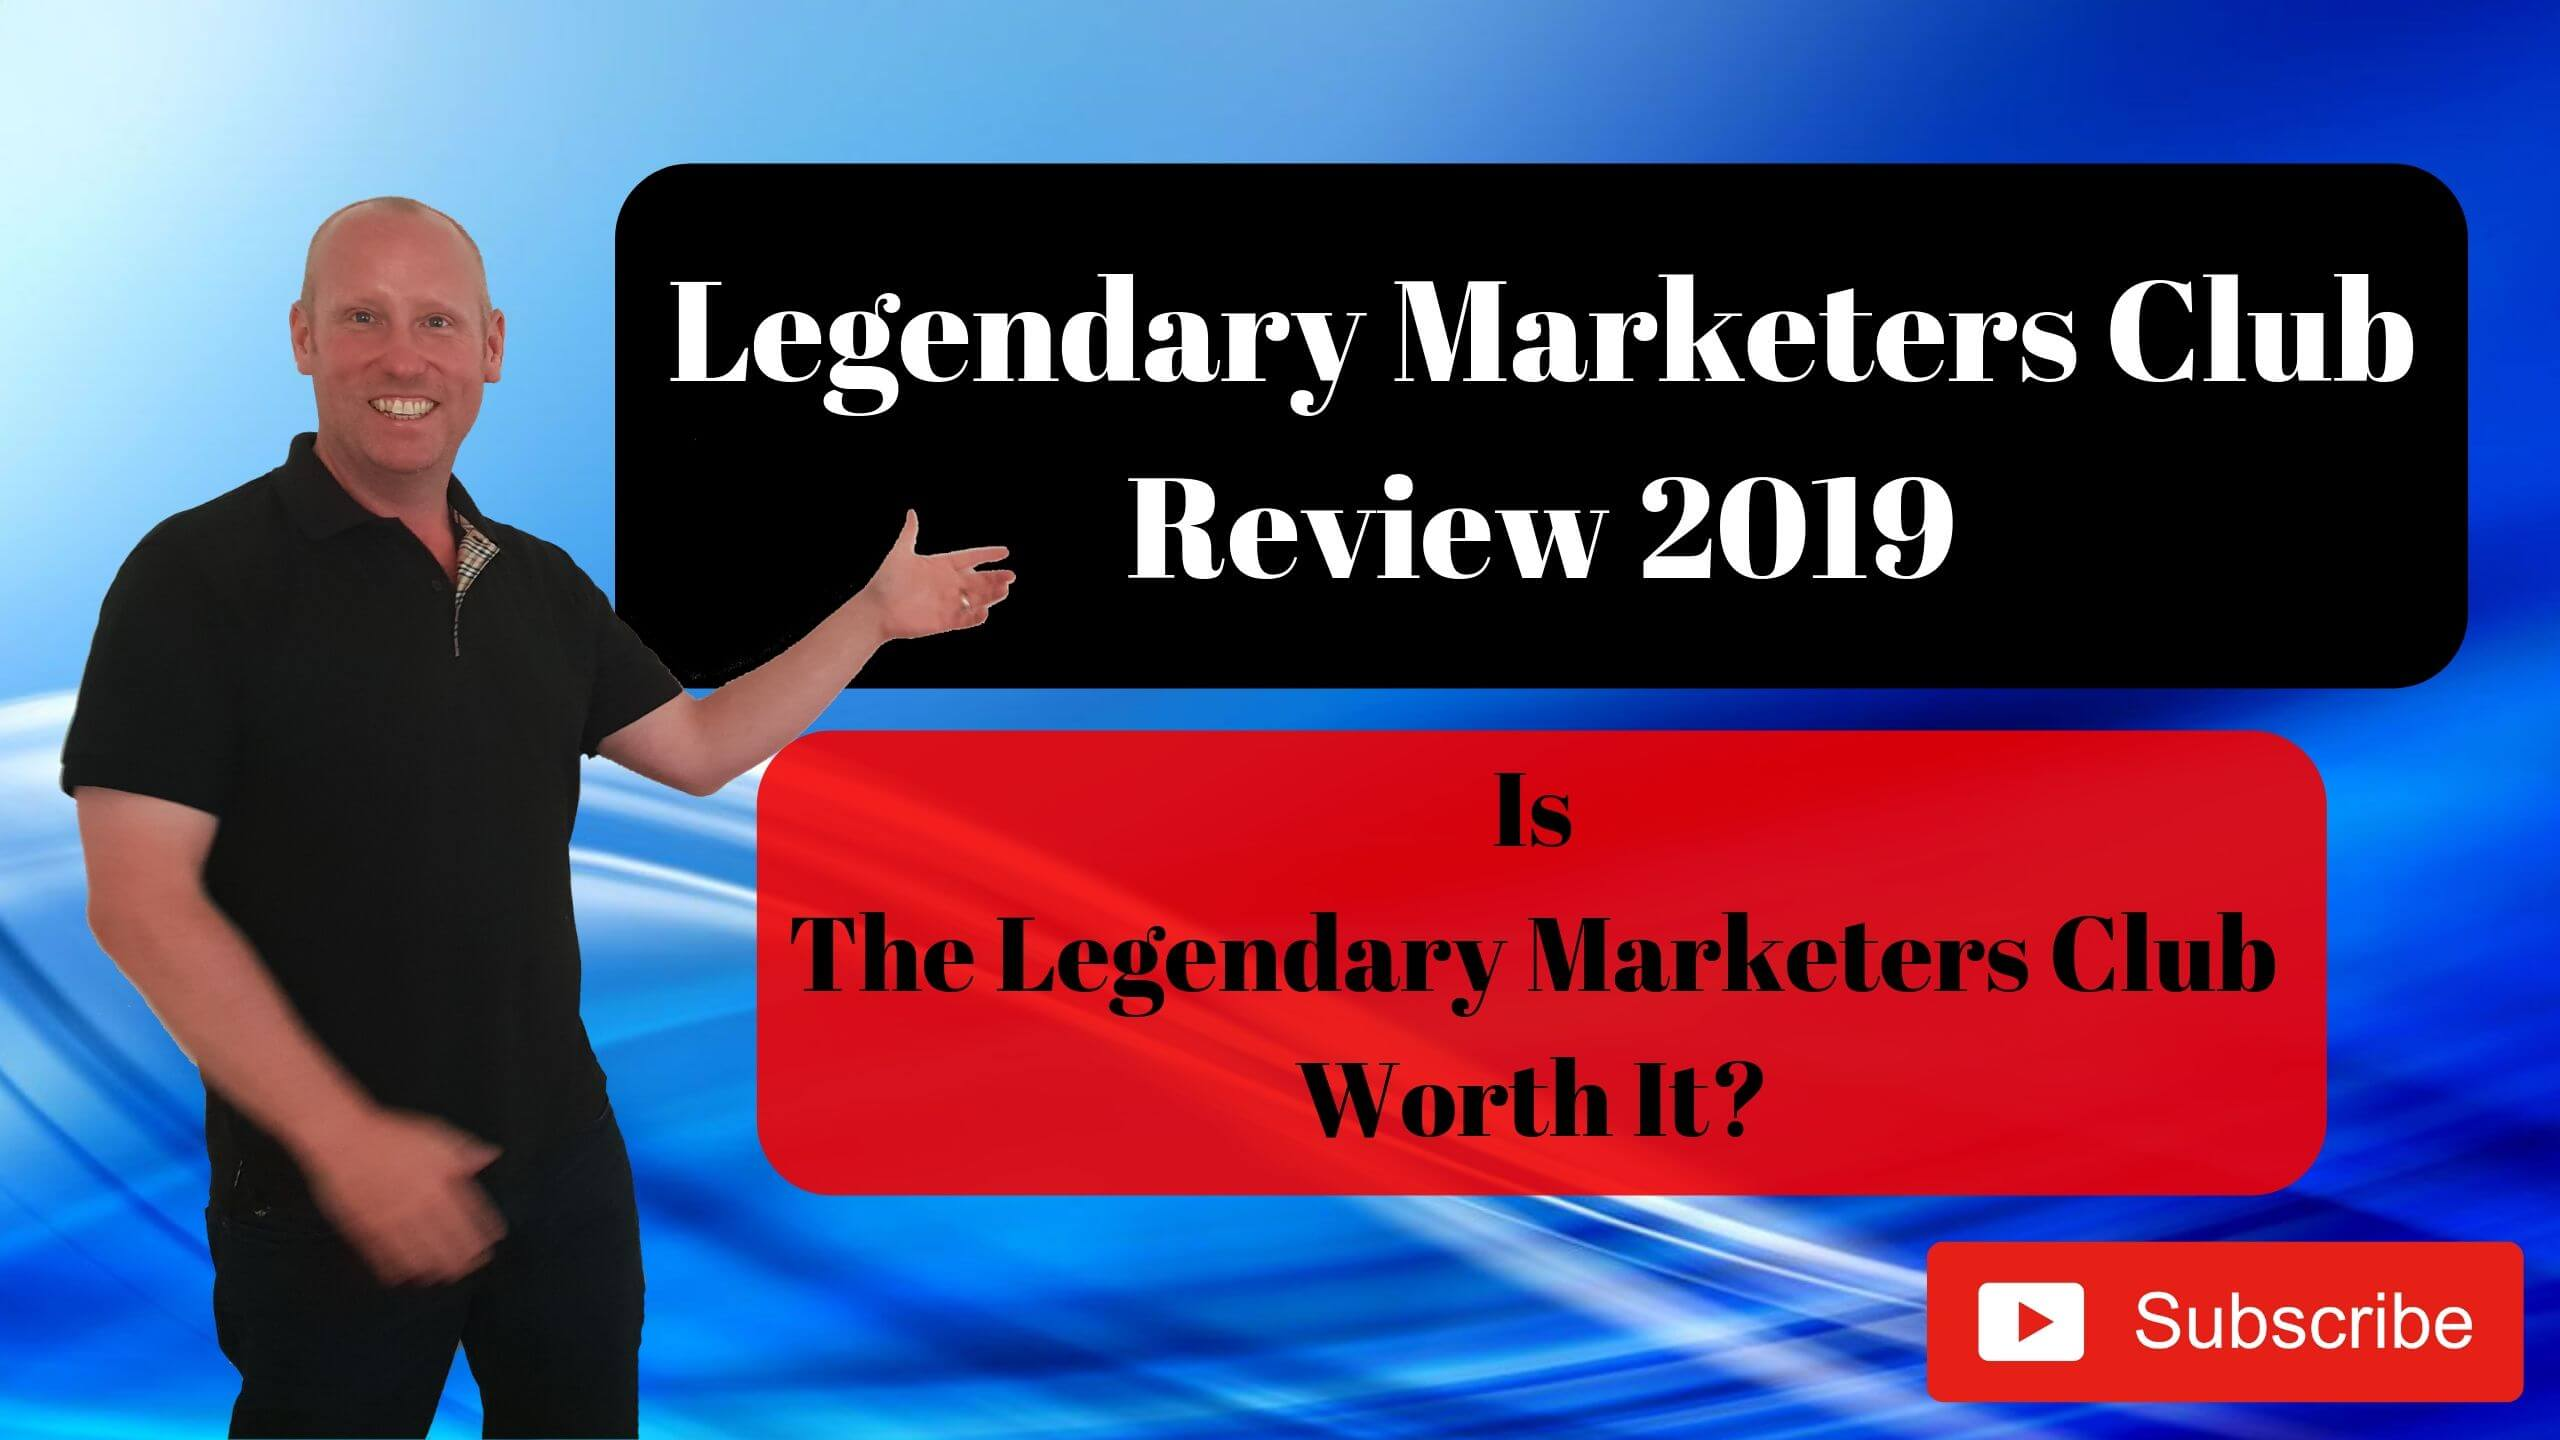 Legendary Marketer Internet Marketing Program Cheap Refurbished